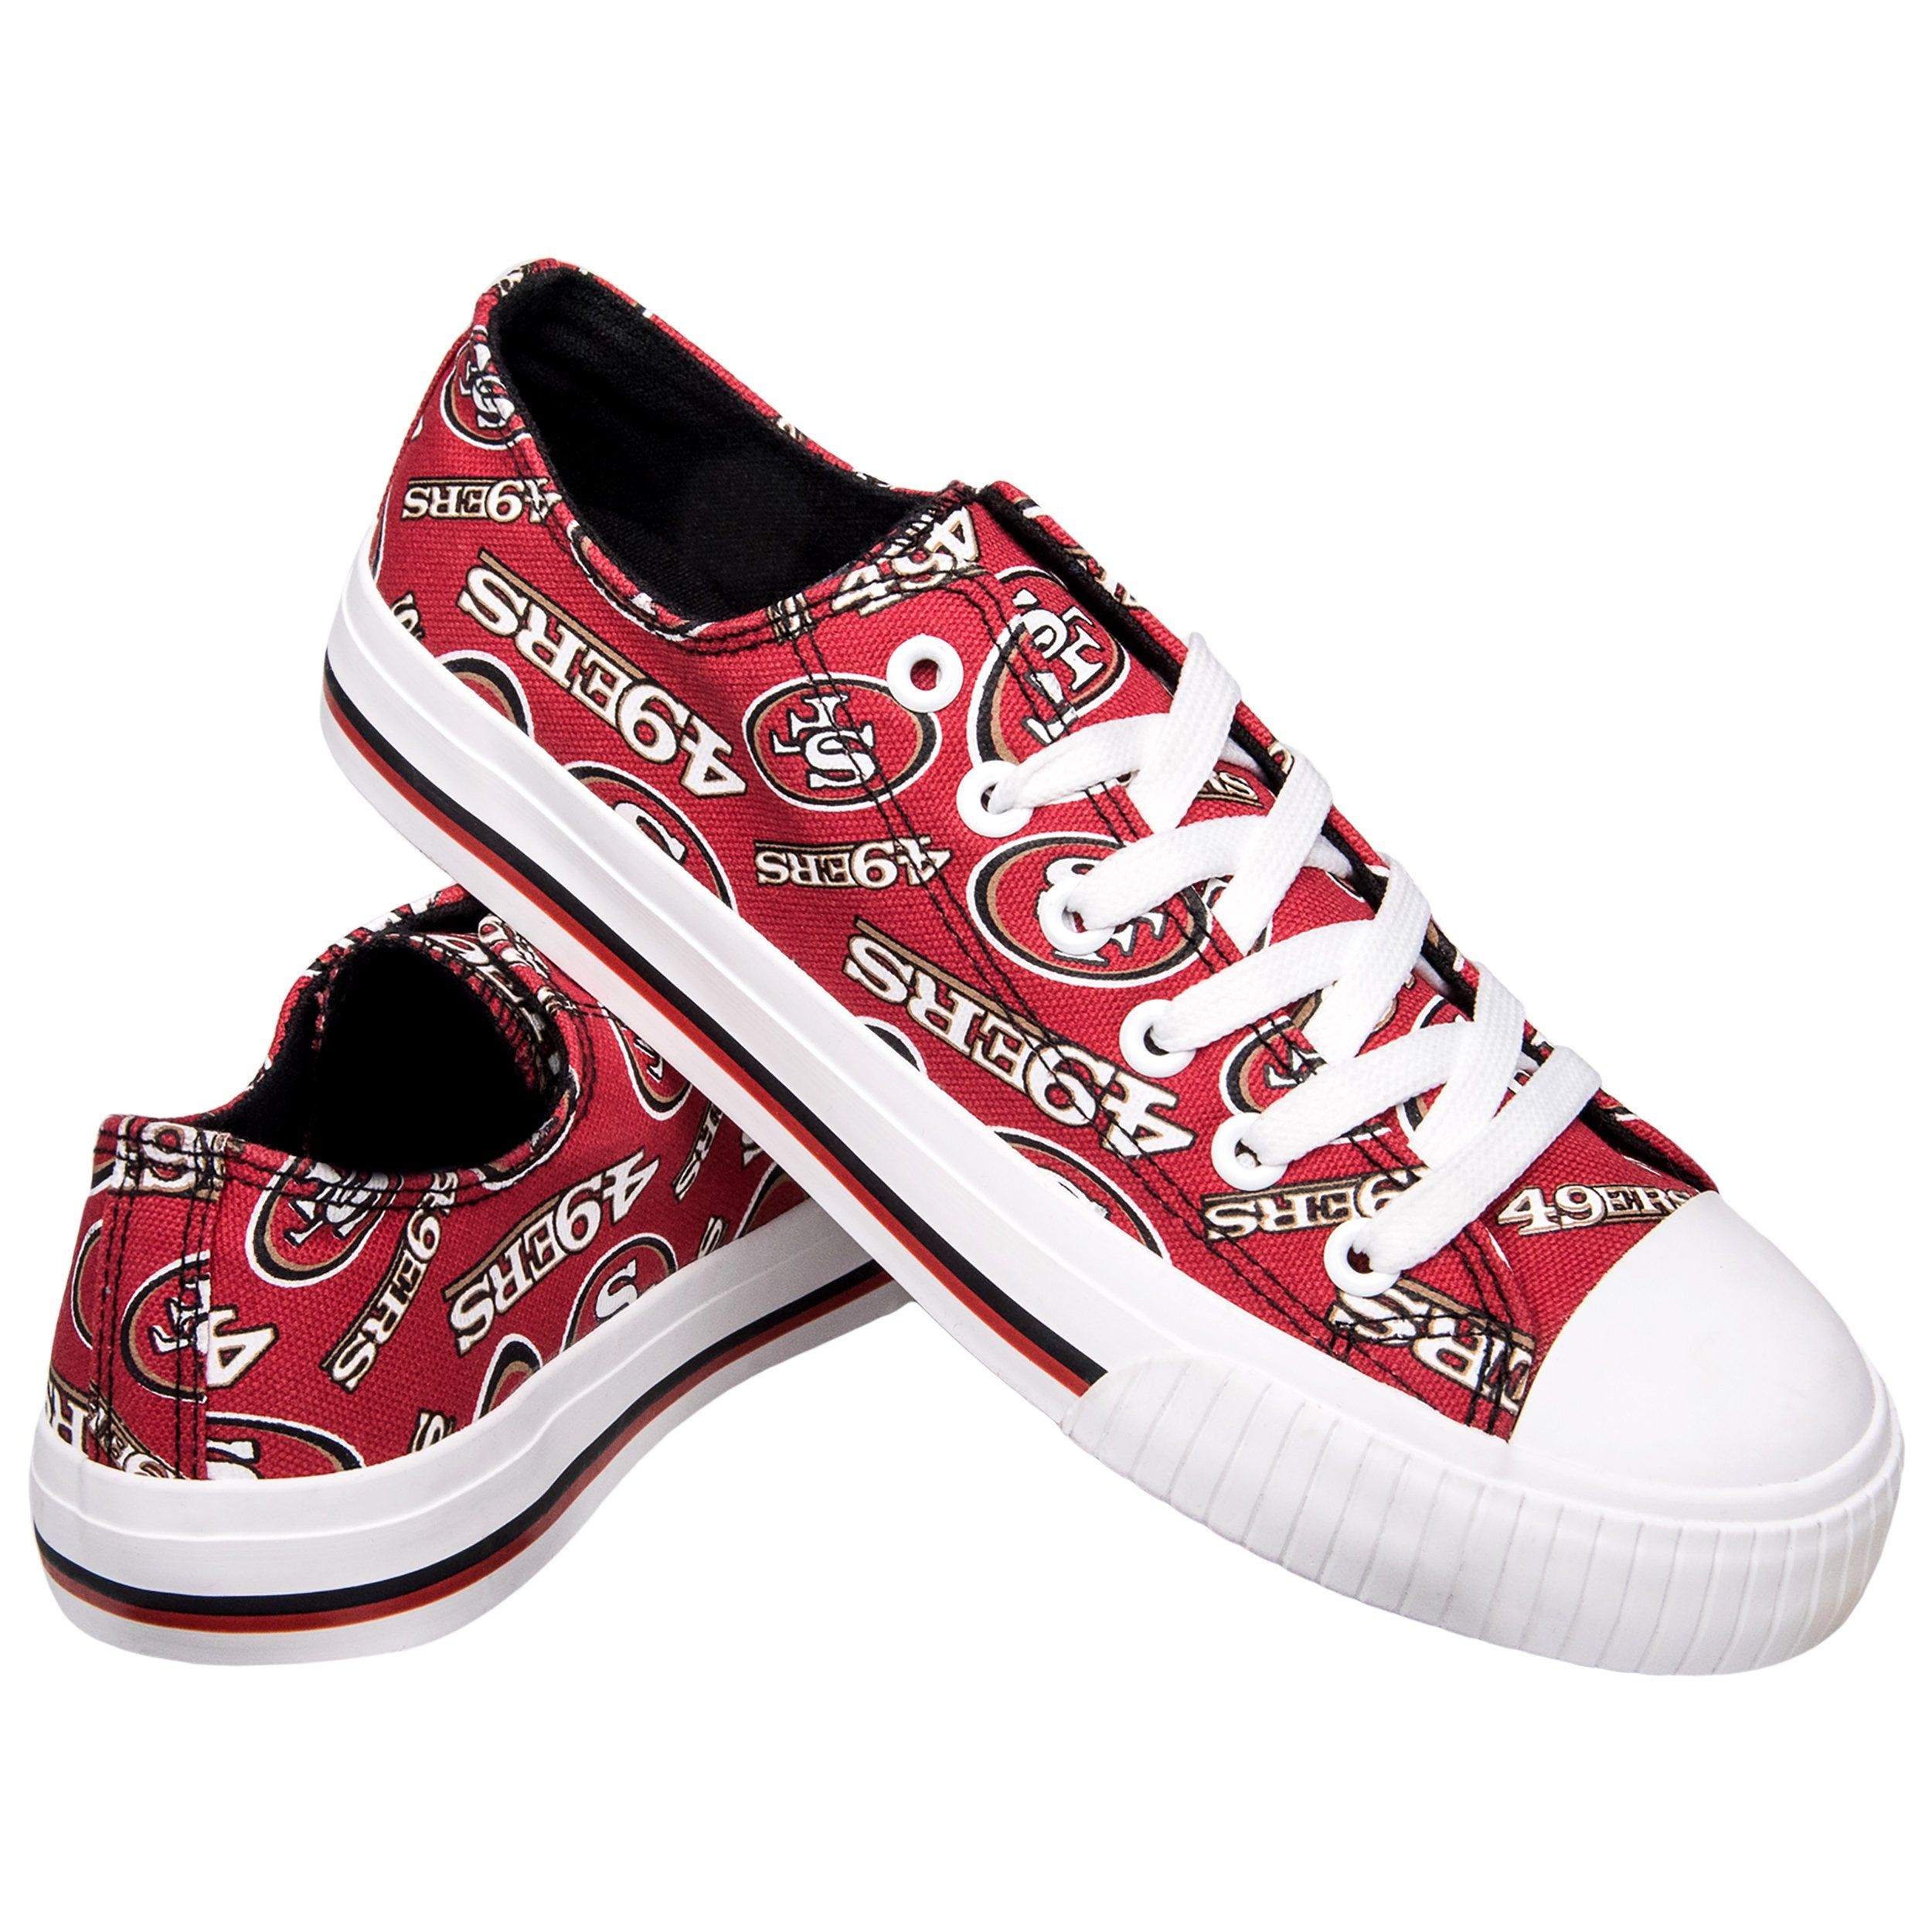 0c729f791b9 San Francisco 49ers NFL Womens Low Top Repeat Print Canvas Shoes